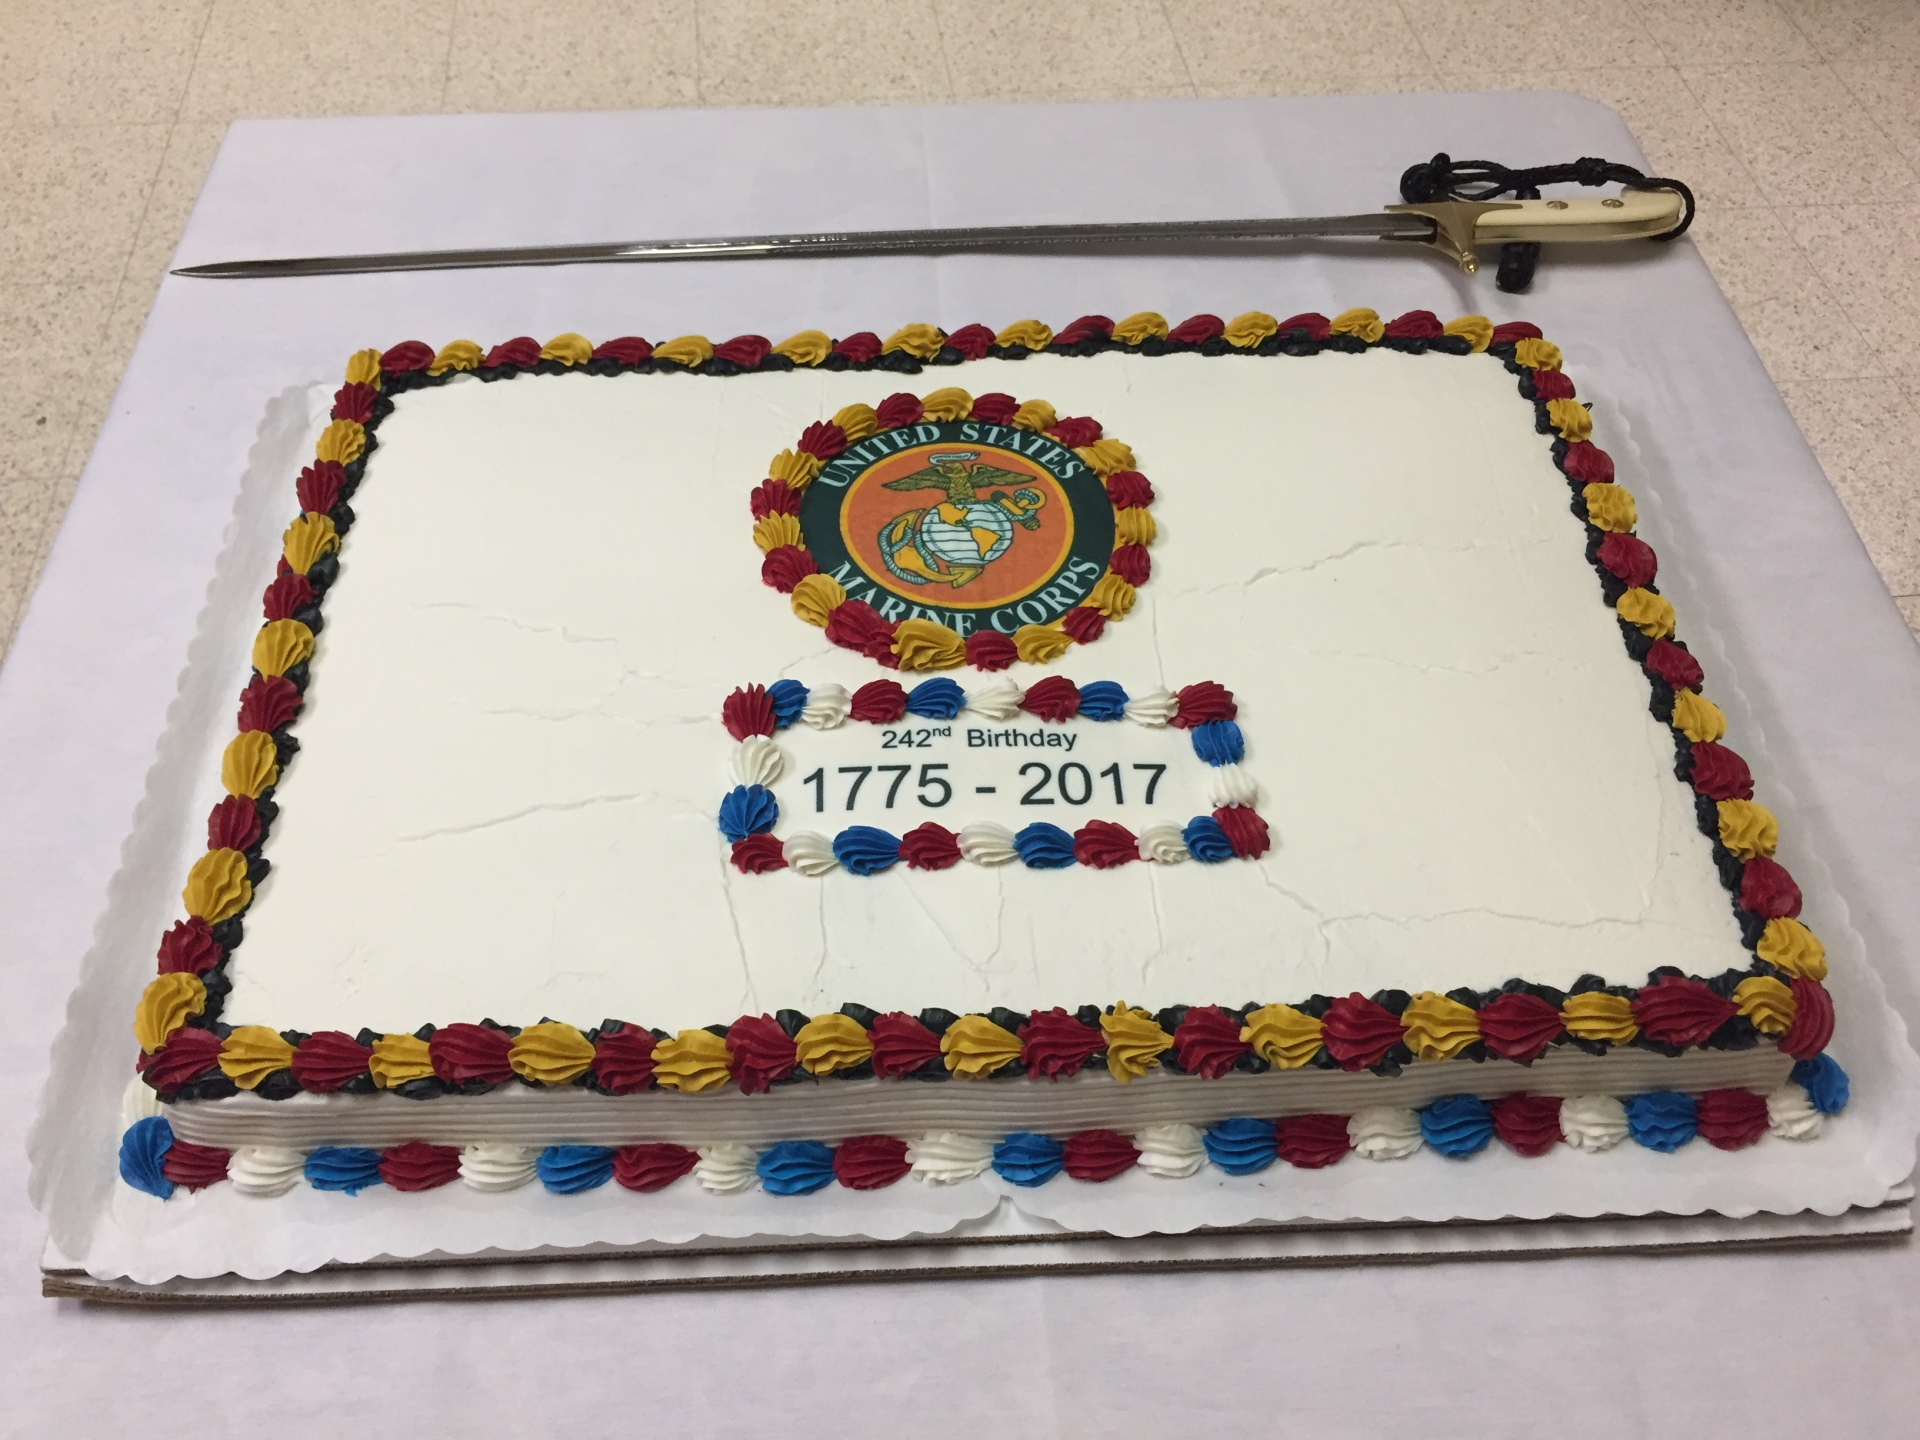 Birthday Cake, Detachment's Marine Corps 242nd Ball